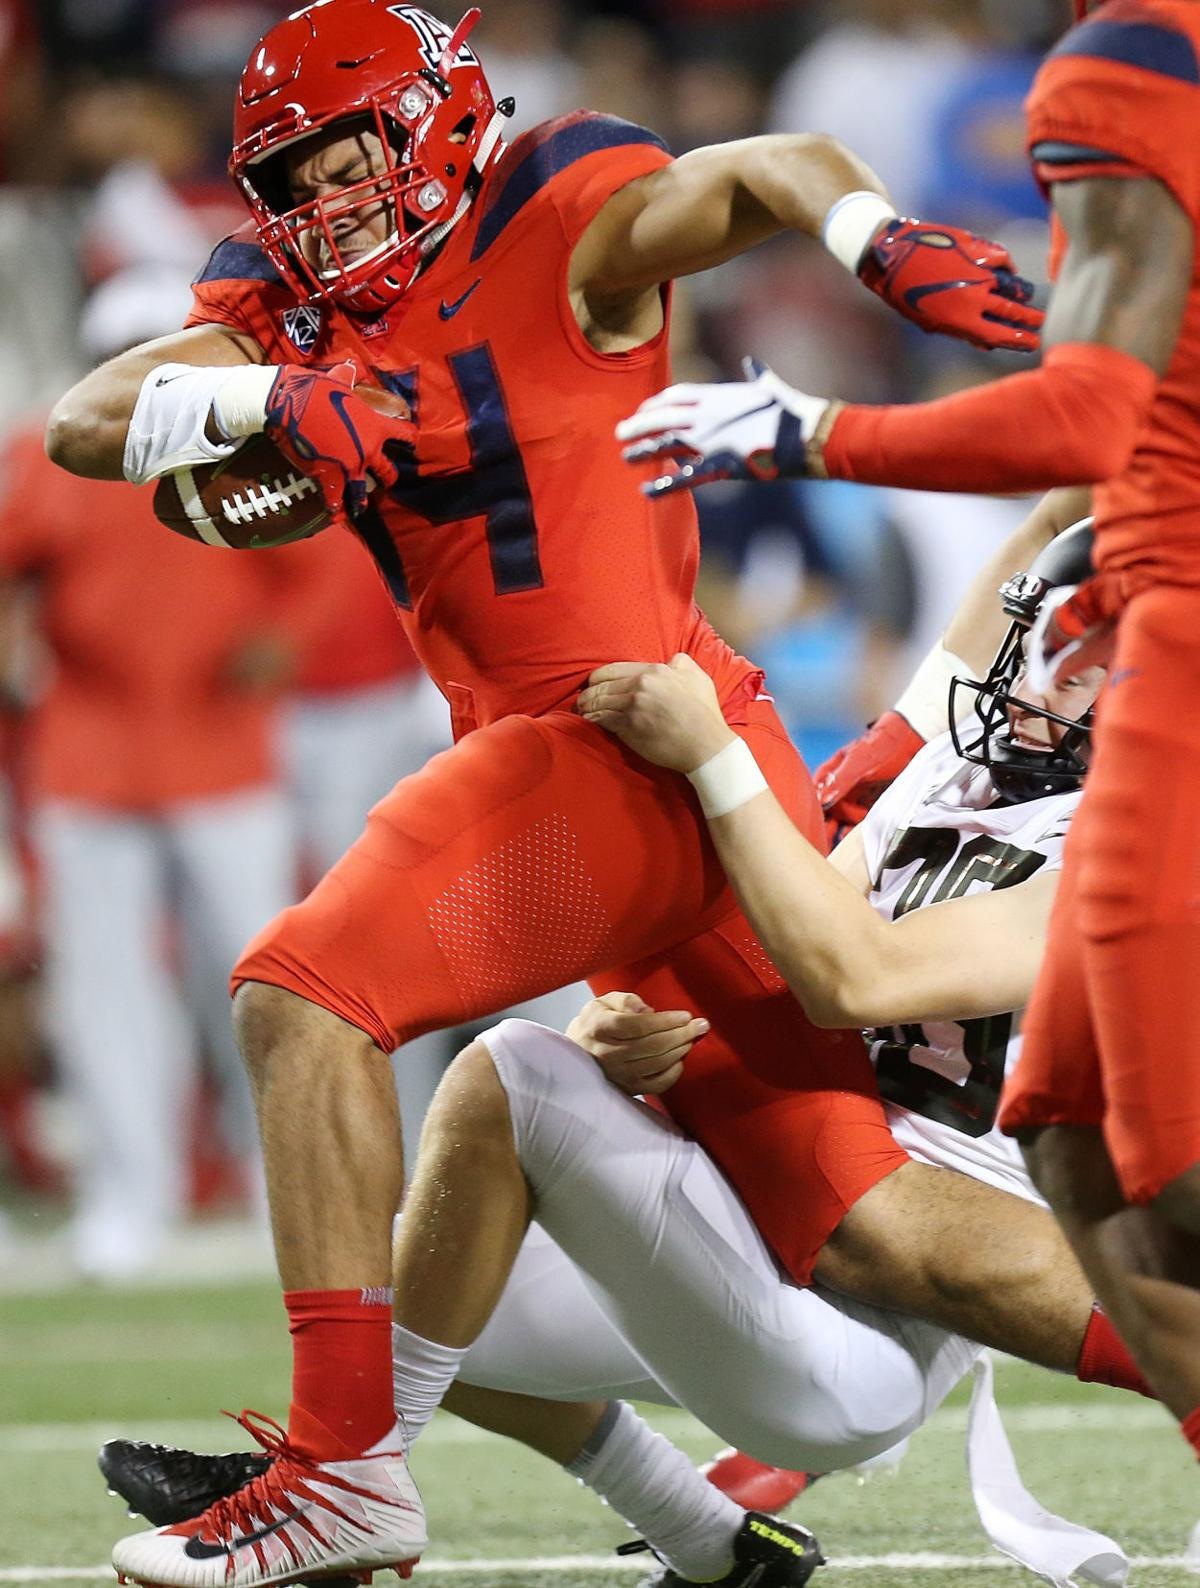 Arizona Wildcats vs. No. 19 Oregon Ducks